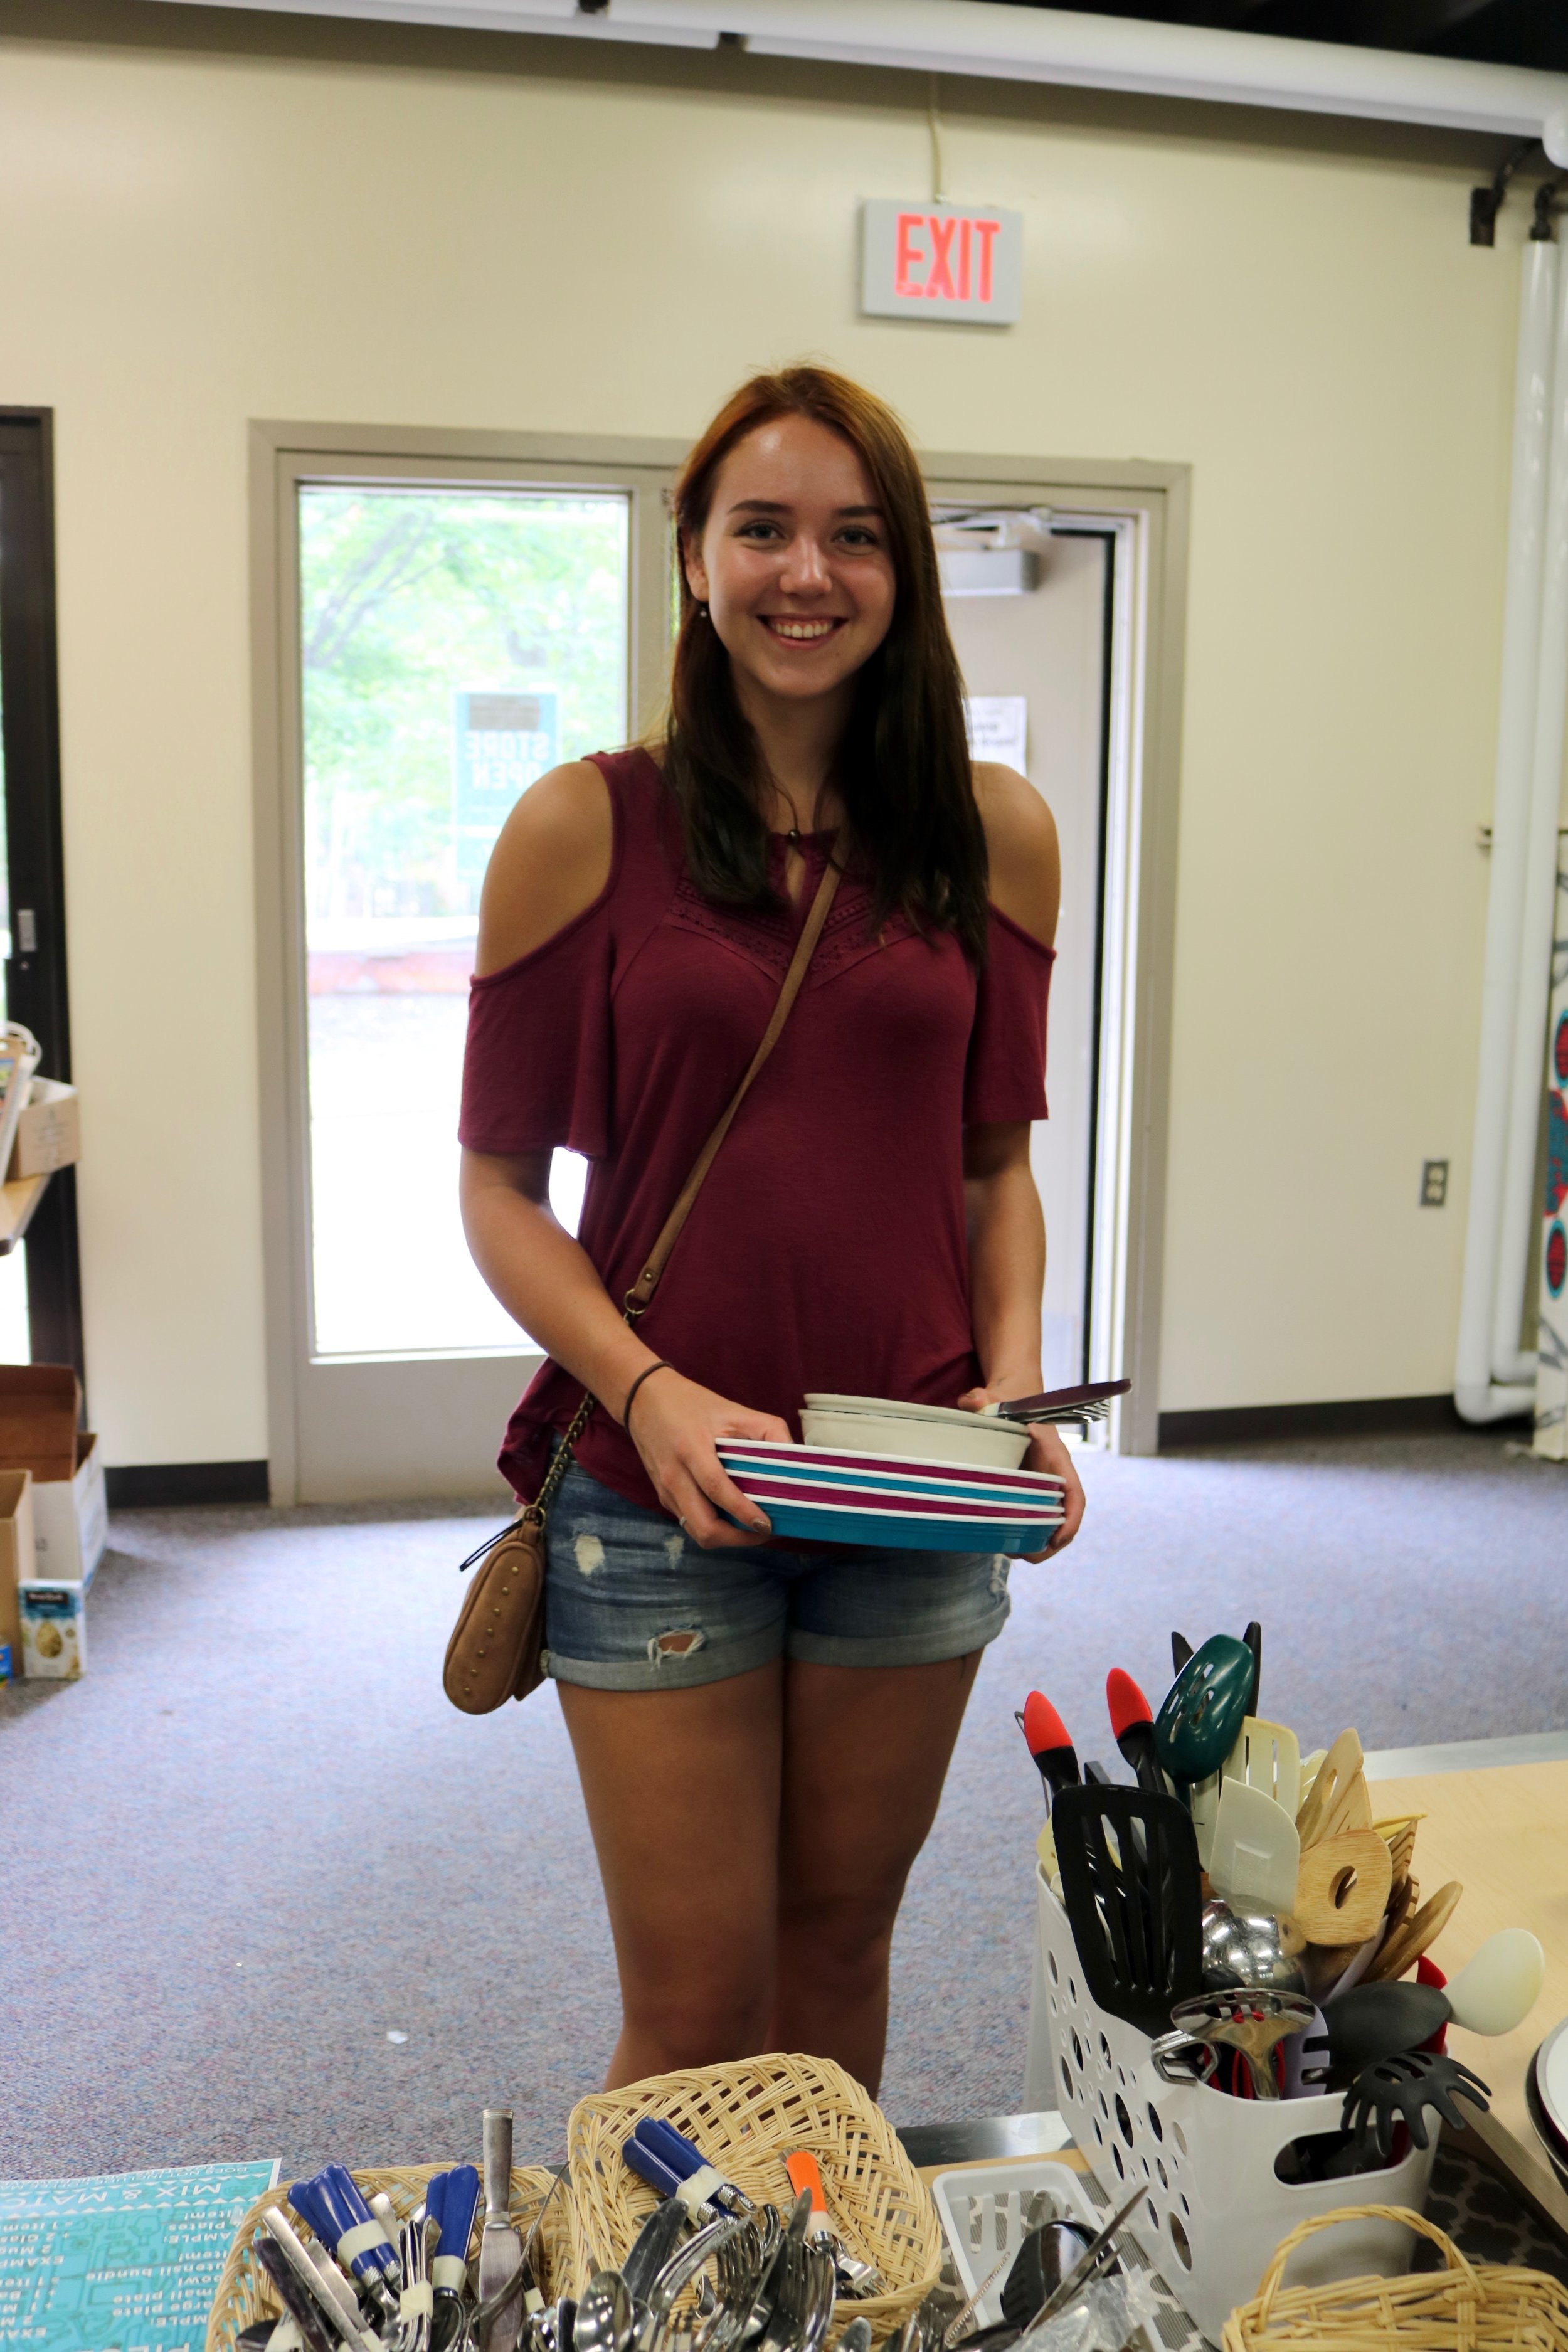 Incoming first year student Rachel Kuhlman was on the hunt for kitchen items and bed risers at the Free Store on Aug. 21, 2018 at Heaney Service Center. She was glad to have these available for her. Photo by Brianna Taggart